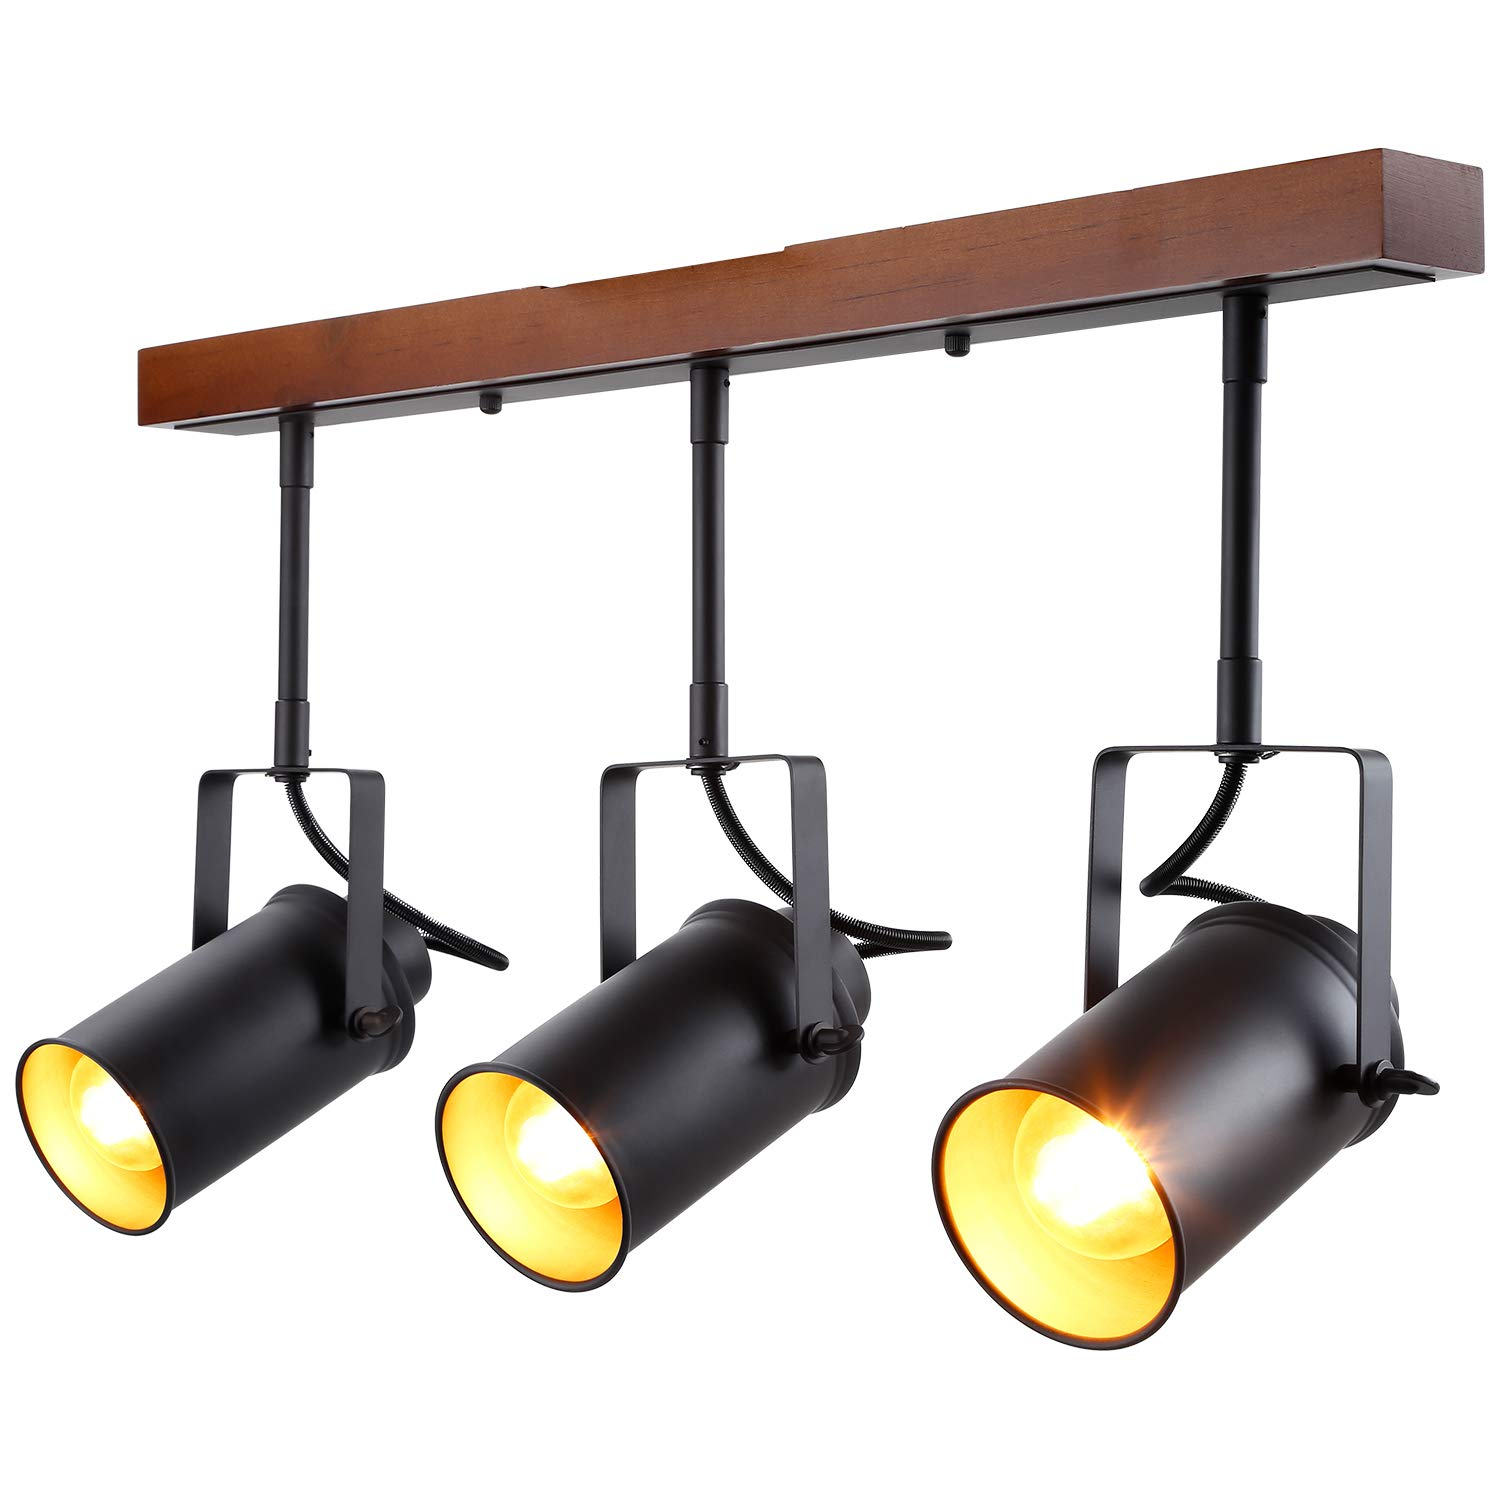 LEONLITE Track Light with Wood Ceiling Base, 3-in-1 Spotlight, Retro Industrial Style, 3 Bulbs Included, for Dining Rooms, Kitchens, Living Rooms, Restaurants, Pubs, 5 Years Warranty